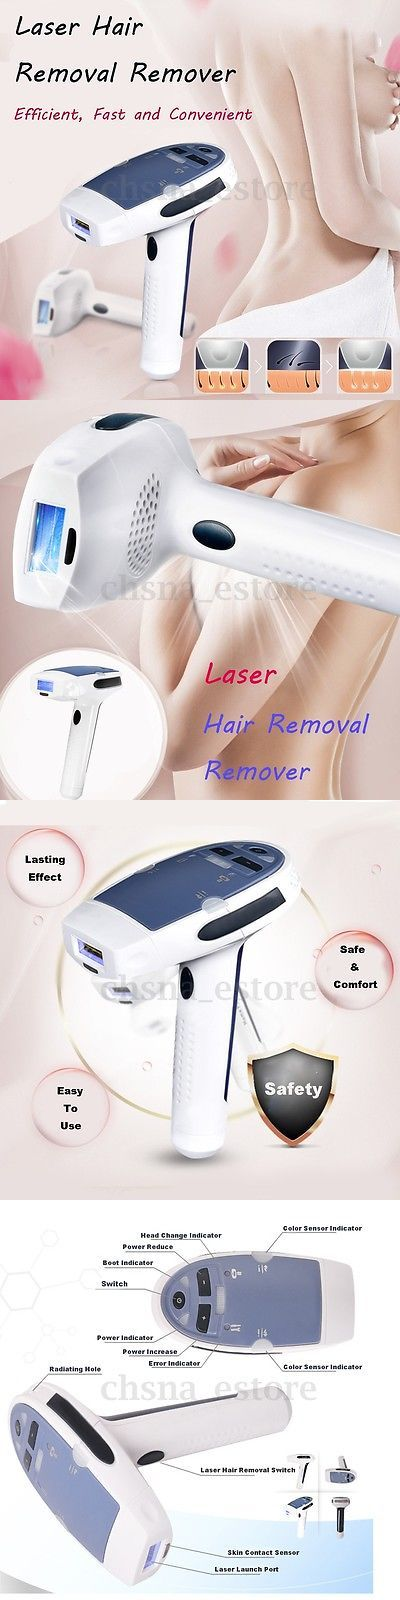 Laser Hair Removal and IPL: Laser Ipl Permanent Hair Removal Machine Device Body Face Hair Remove Home Use -> BUY IT NOW ONLY: $72.99 on eBay!